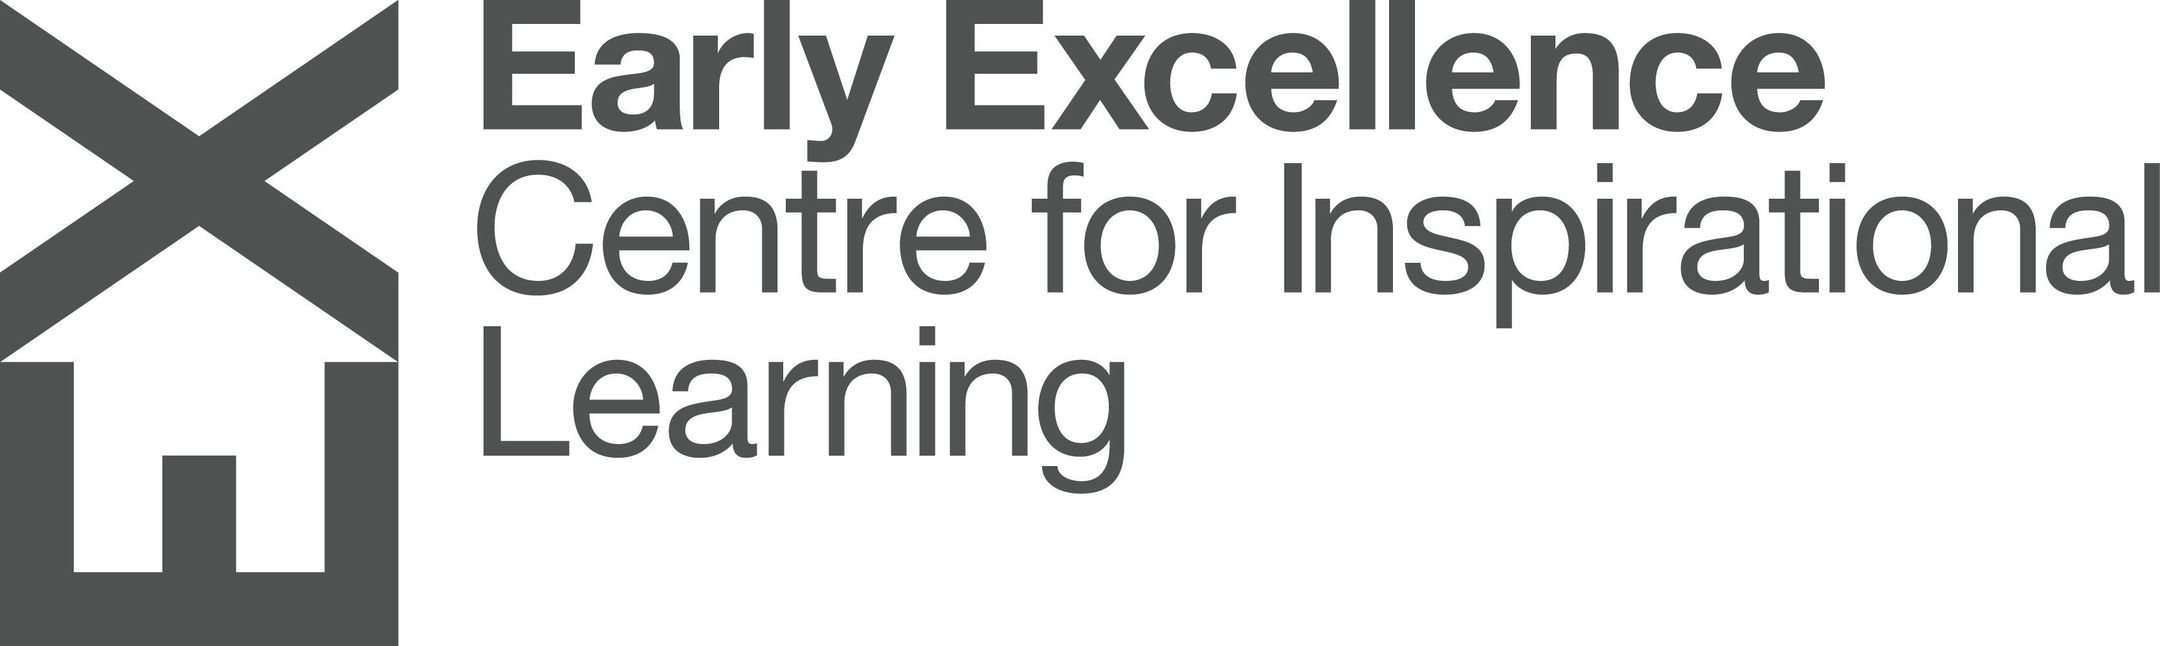 Early Excellence logo.jpg